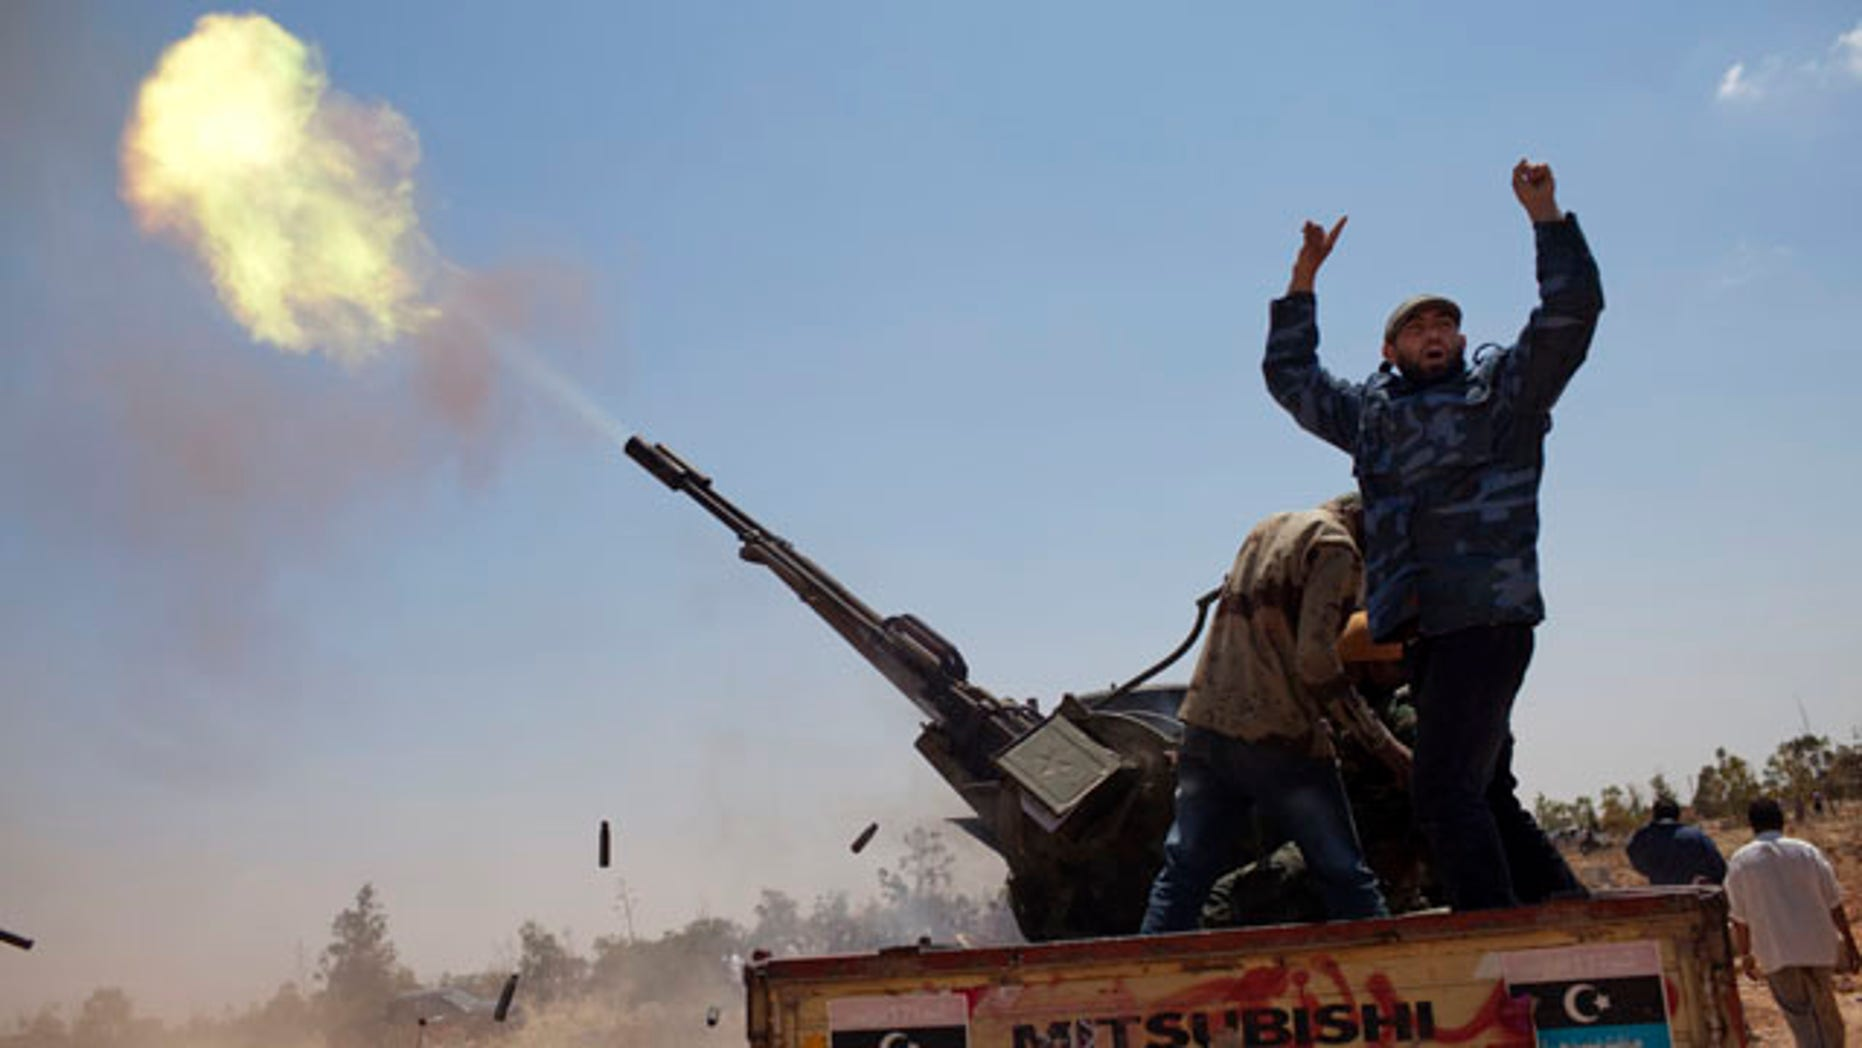 May 7: A rebel fighter gestures as an anti-aircraft gun fires into the sky in a gesture to salute the dead, during the funeral of three rebel fighters killed by Muammar al-Qaddafi forces,  Benghazi, Libya.